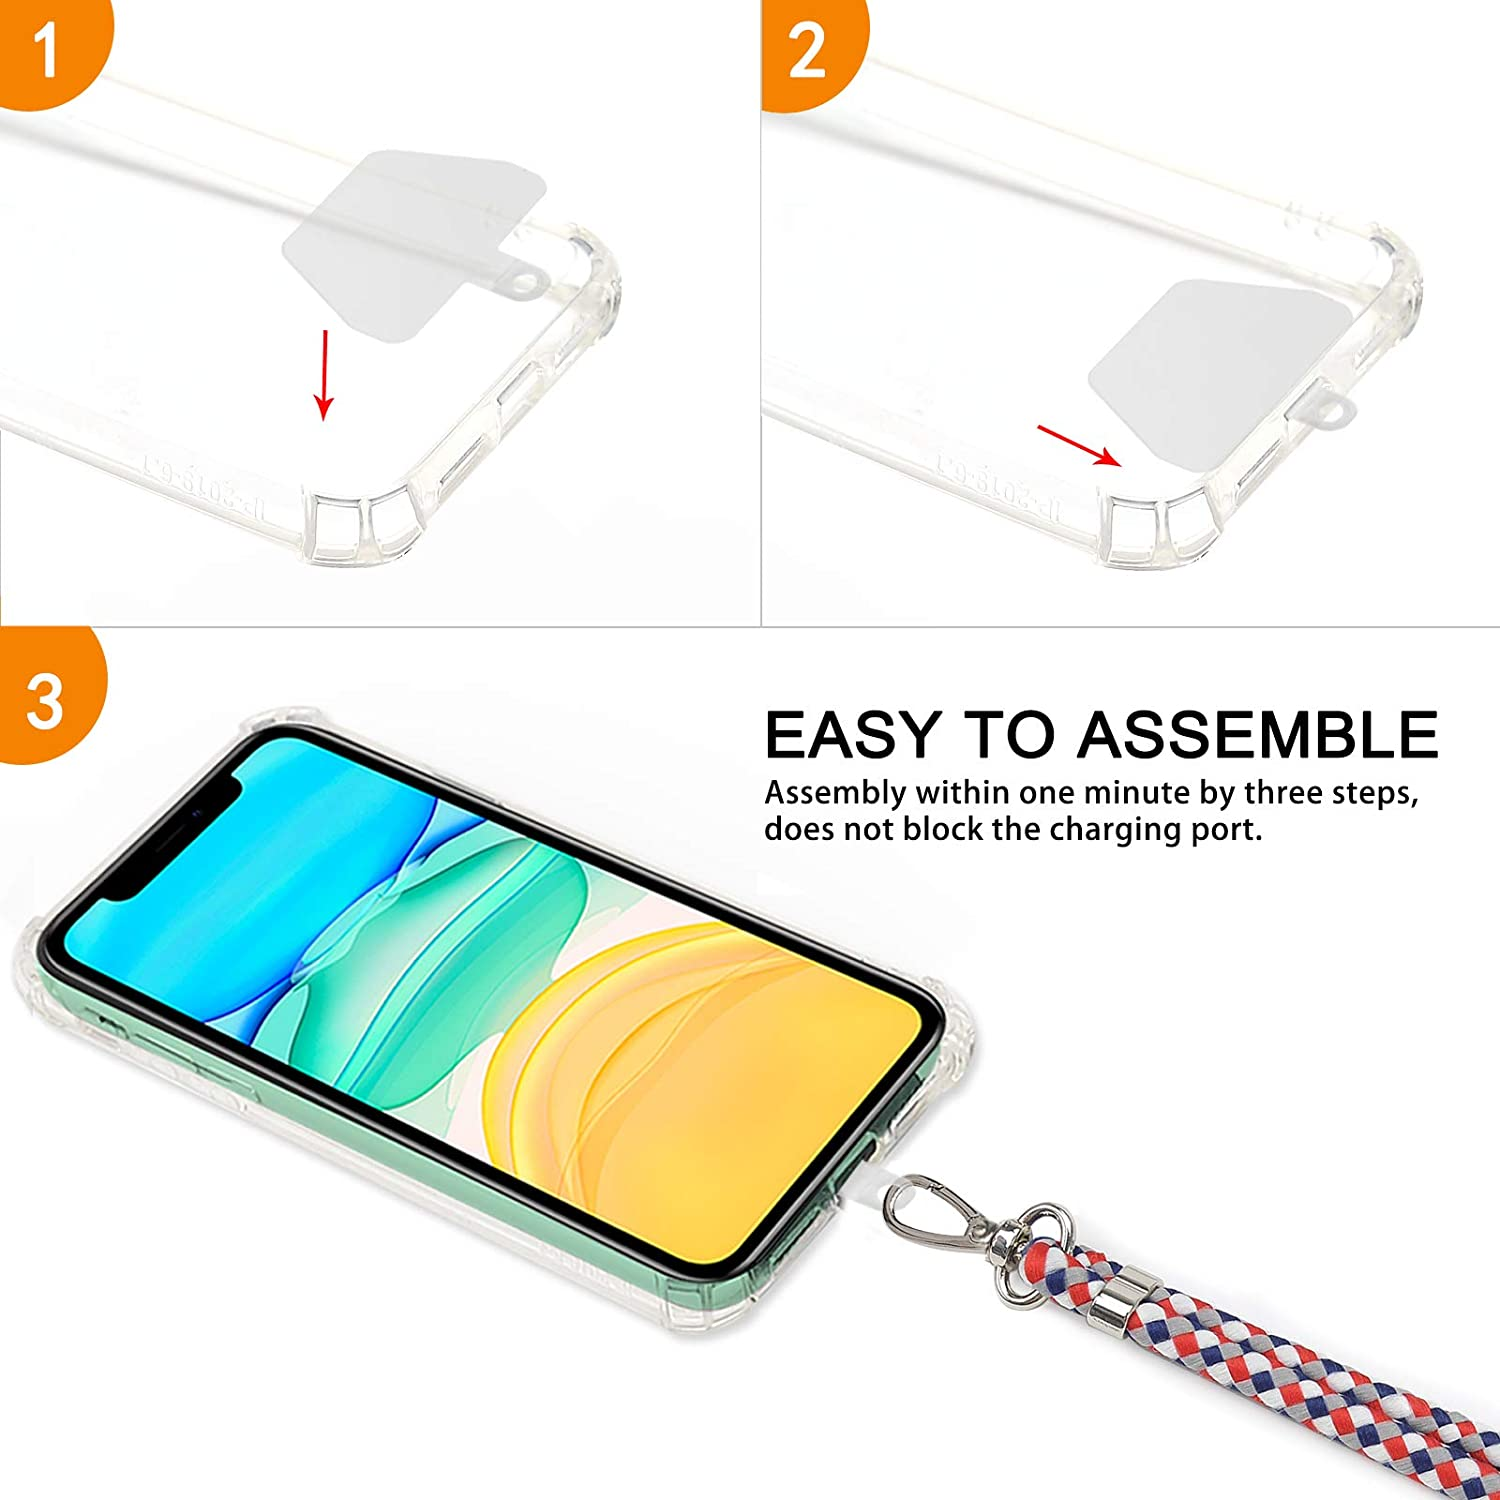 Baby Purple Phone Tether Safety Strap Compatible with Most Smartphones with Full Coverage Case takyu Phone Lanyard Universal Cell Phone Lanyard with Adjustable Nylon Neck Strap